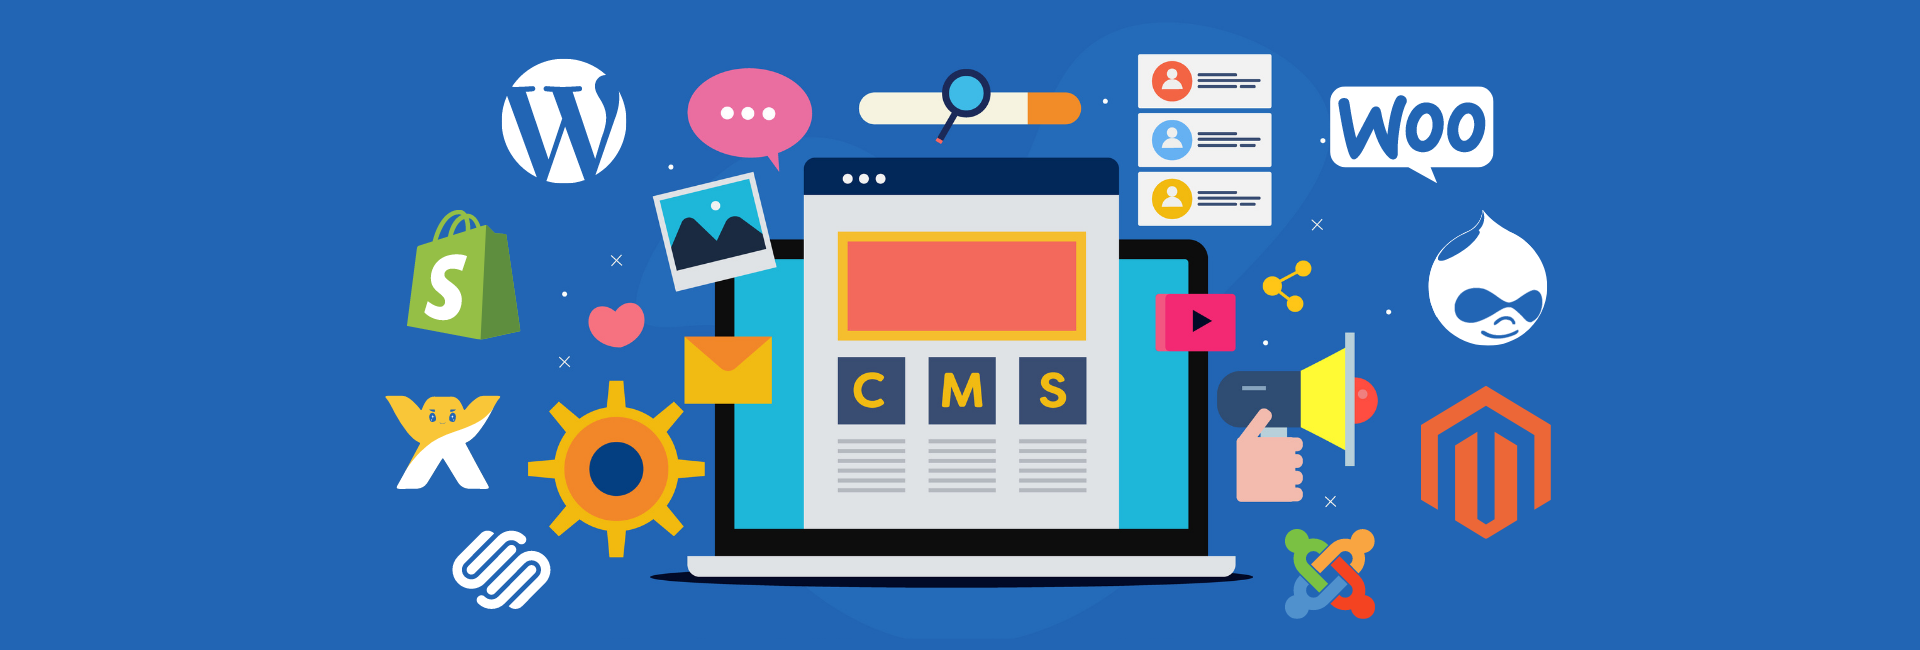 proven website design and development approach and process for WordPress, Shopify, Squarespace, WooCommerce, Wix, Joomla, Magento, Drupal, and more